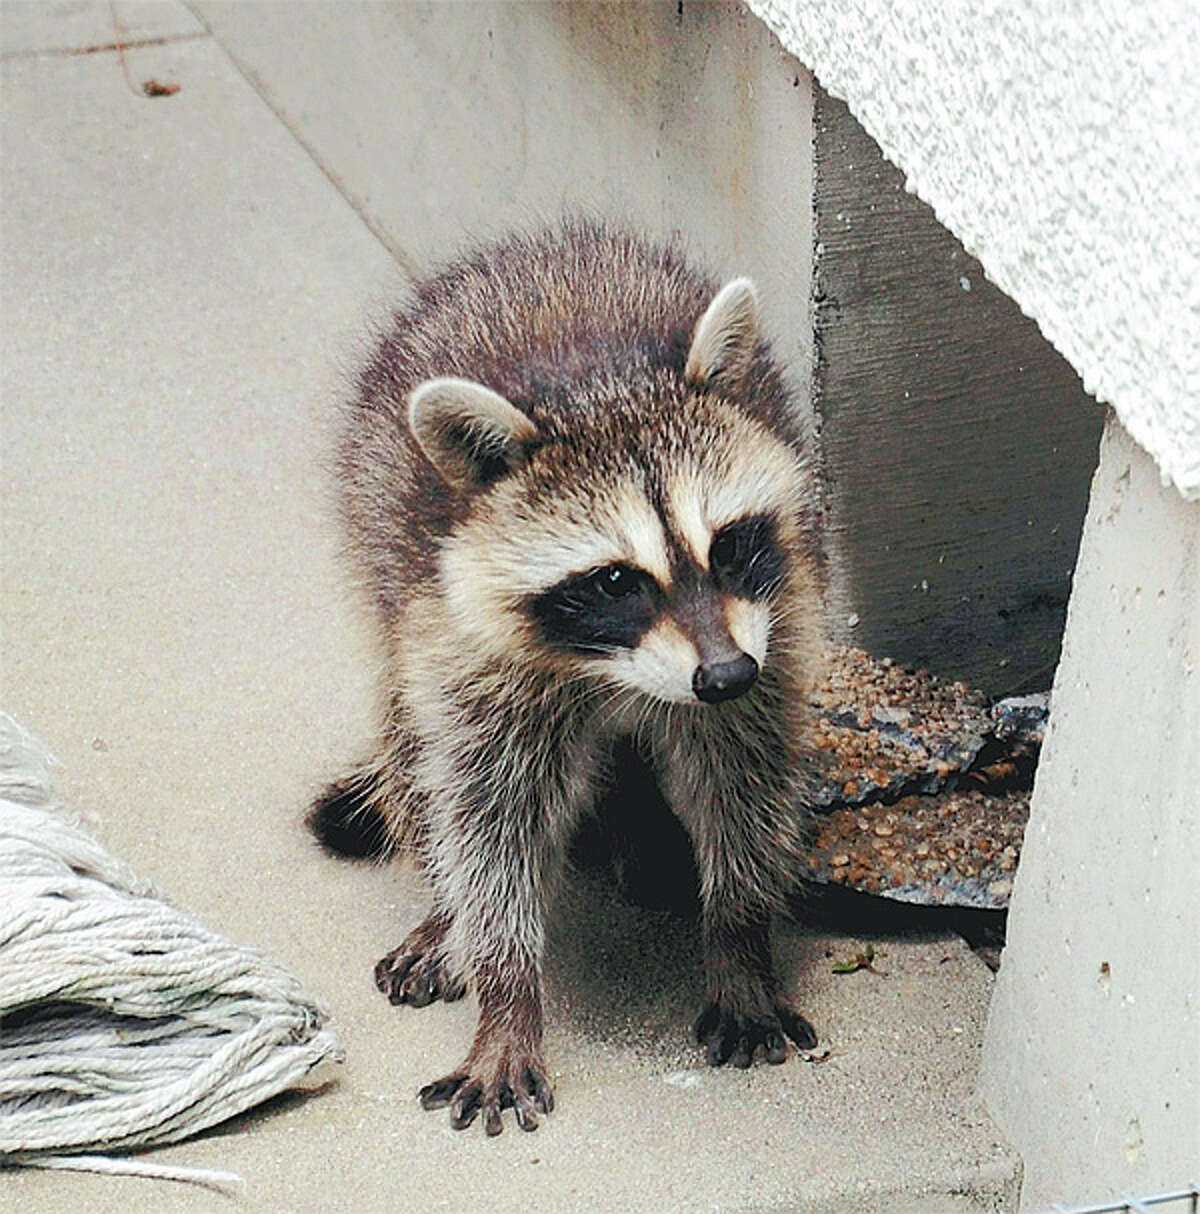 This is one of three raccoons captured Tuesday in Japan, where they are considered an invasive species.